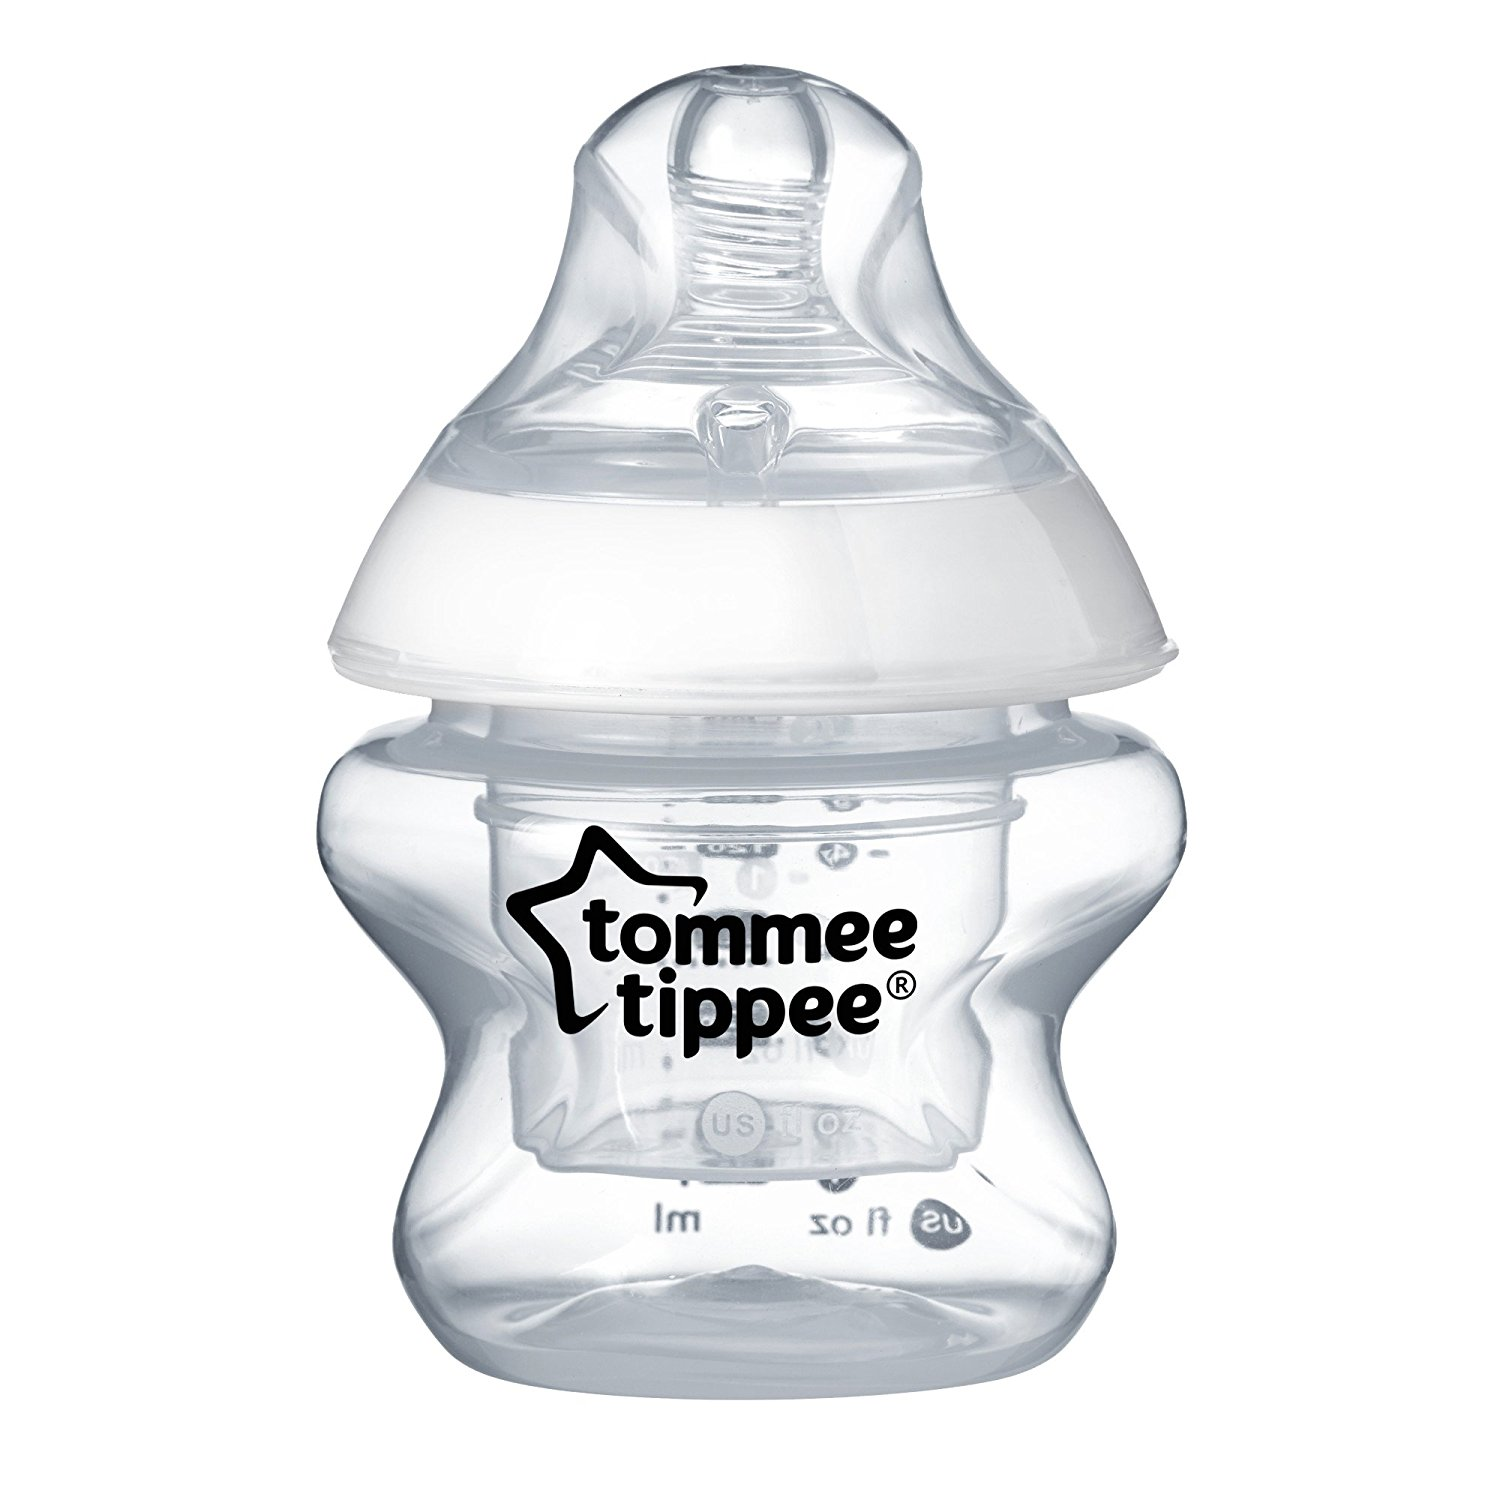 tommee tippee closer to nature bottle, plastic baby bottles, baby bottles, best baby bottles